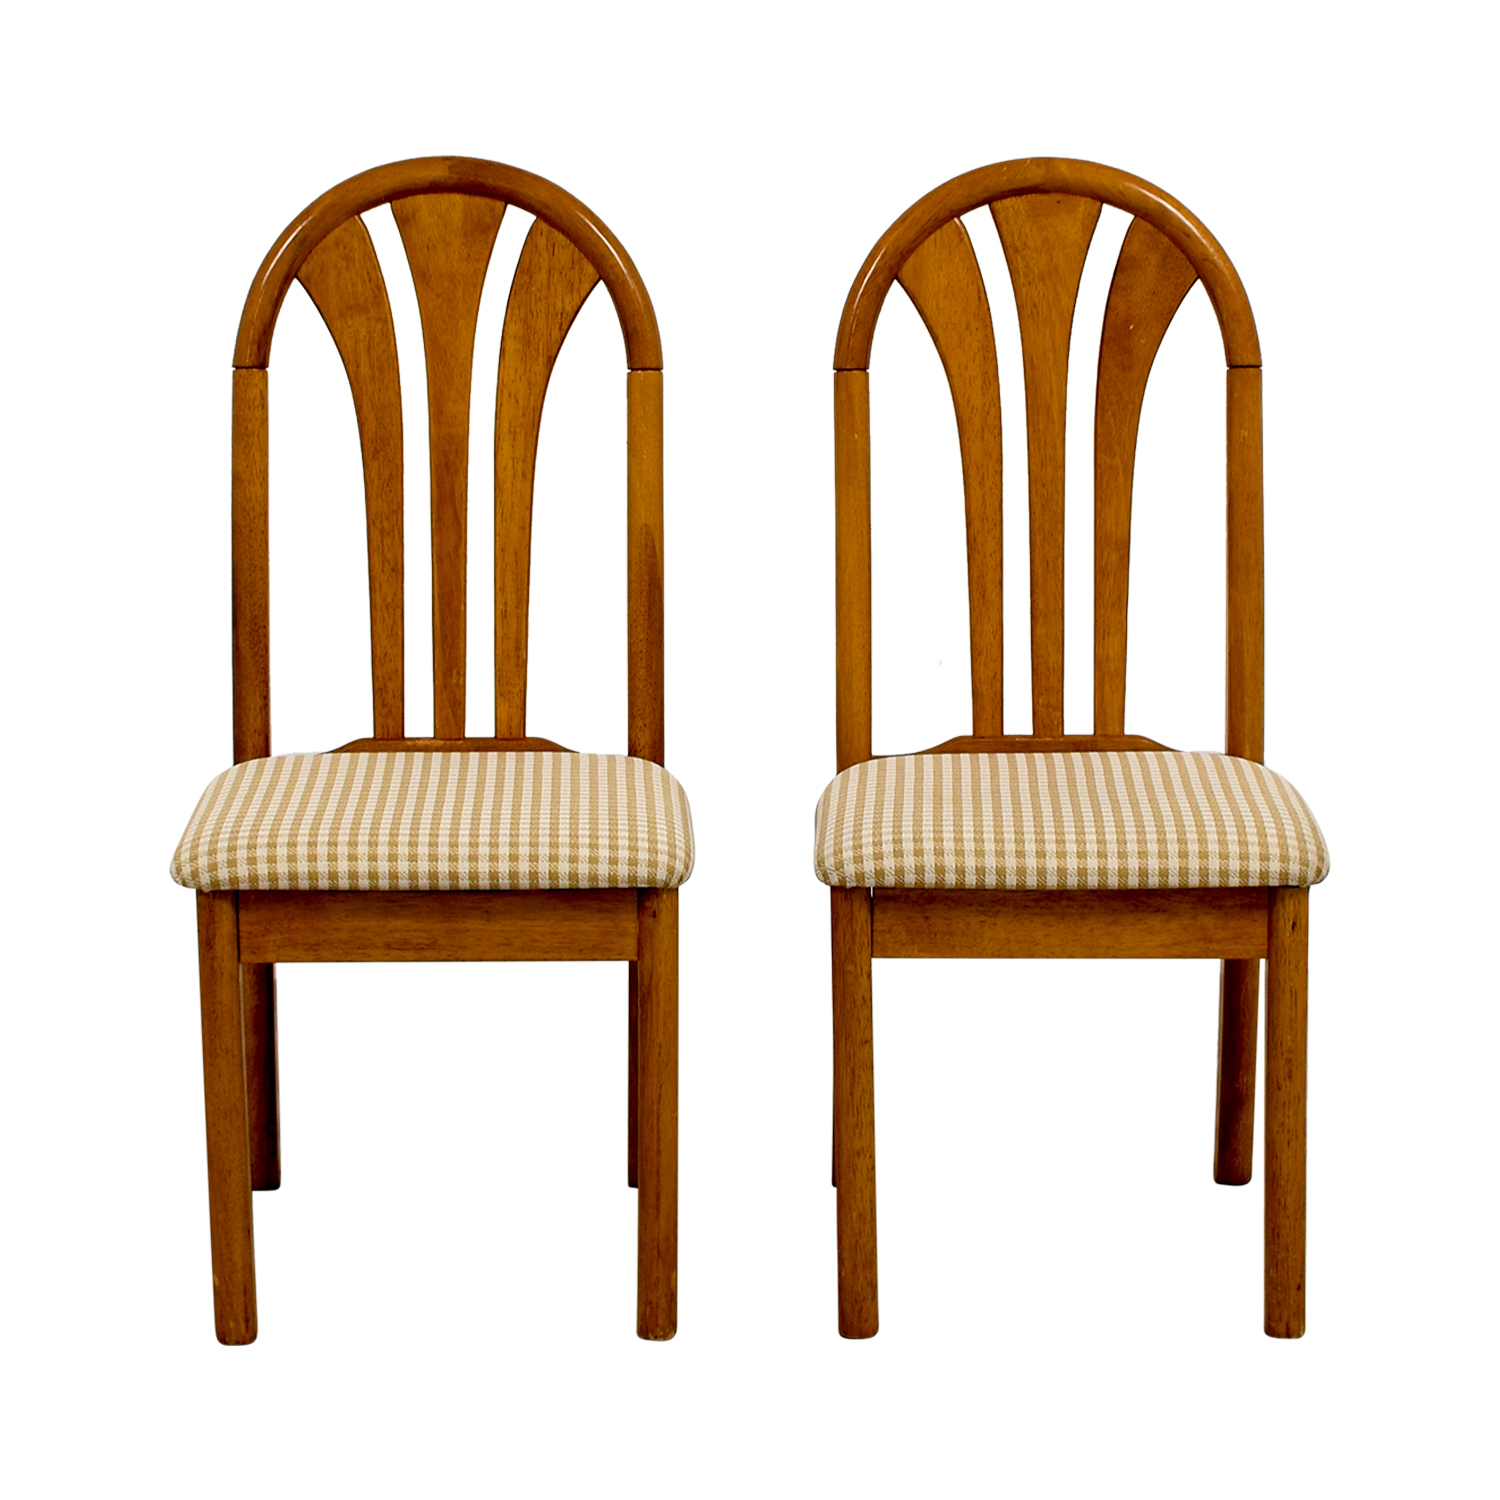 Gingham Upholstered Wood Chairs sale